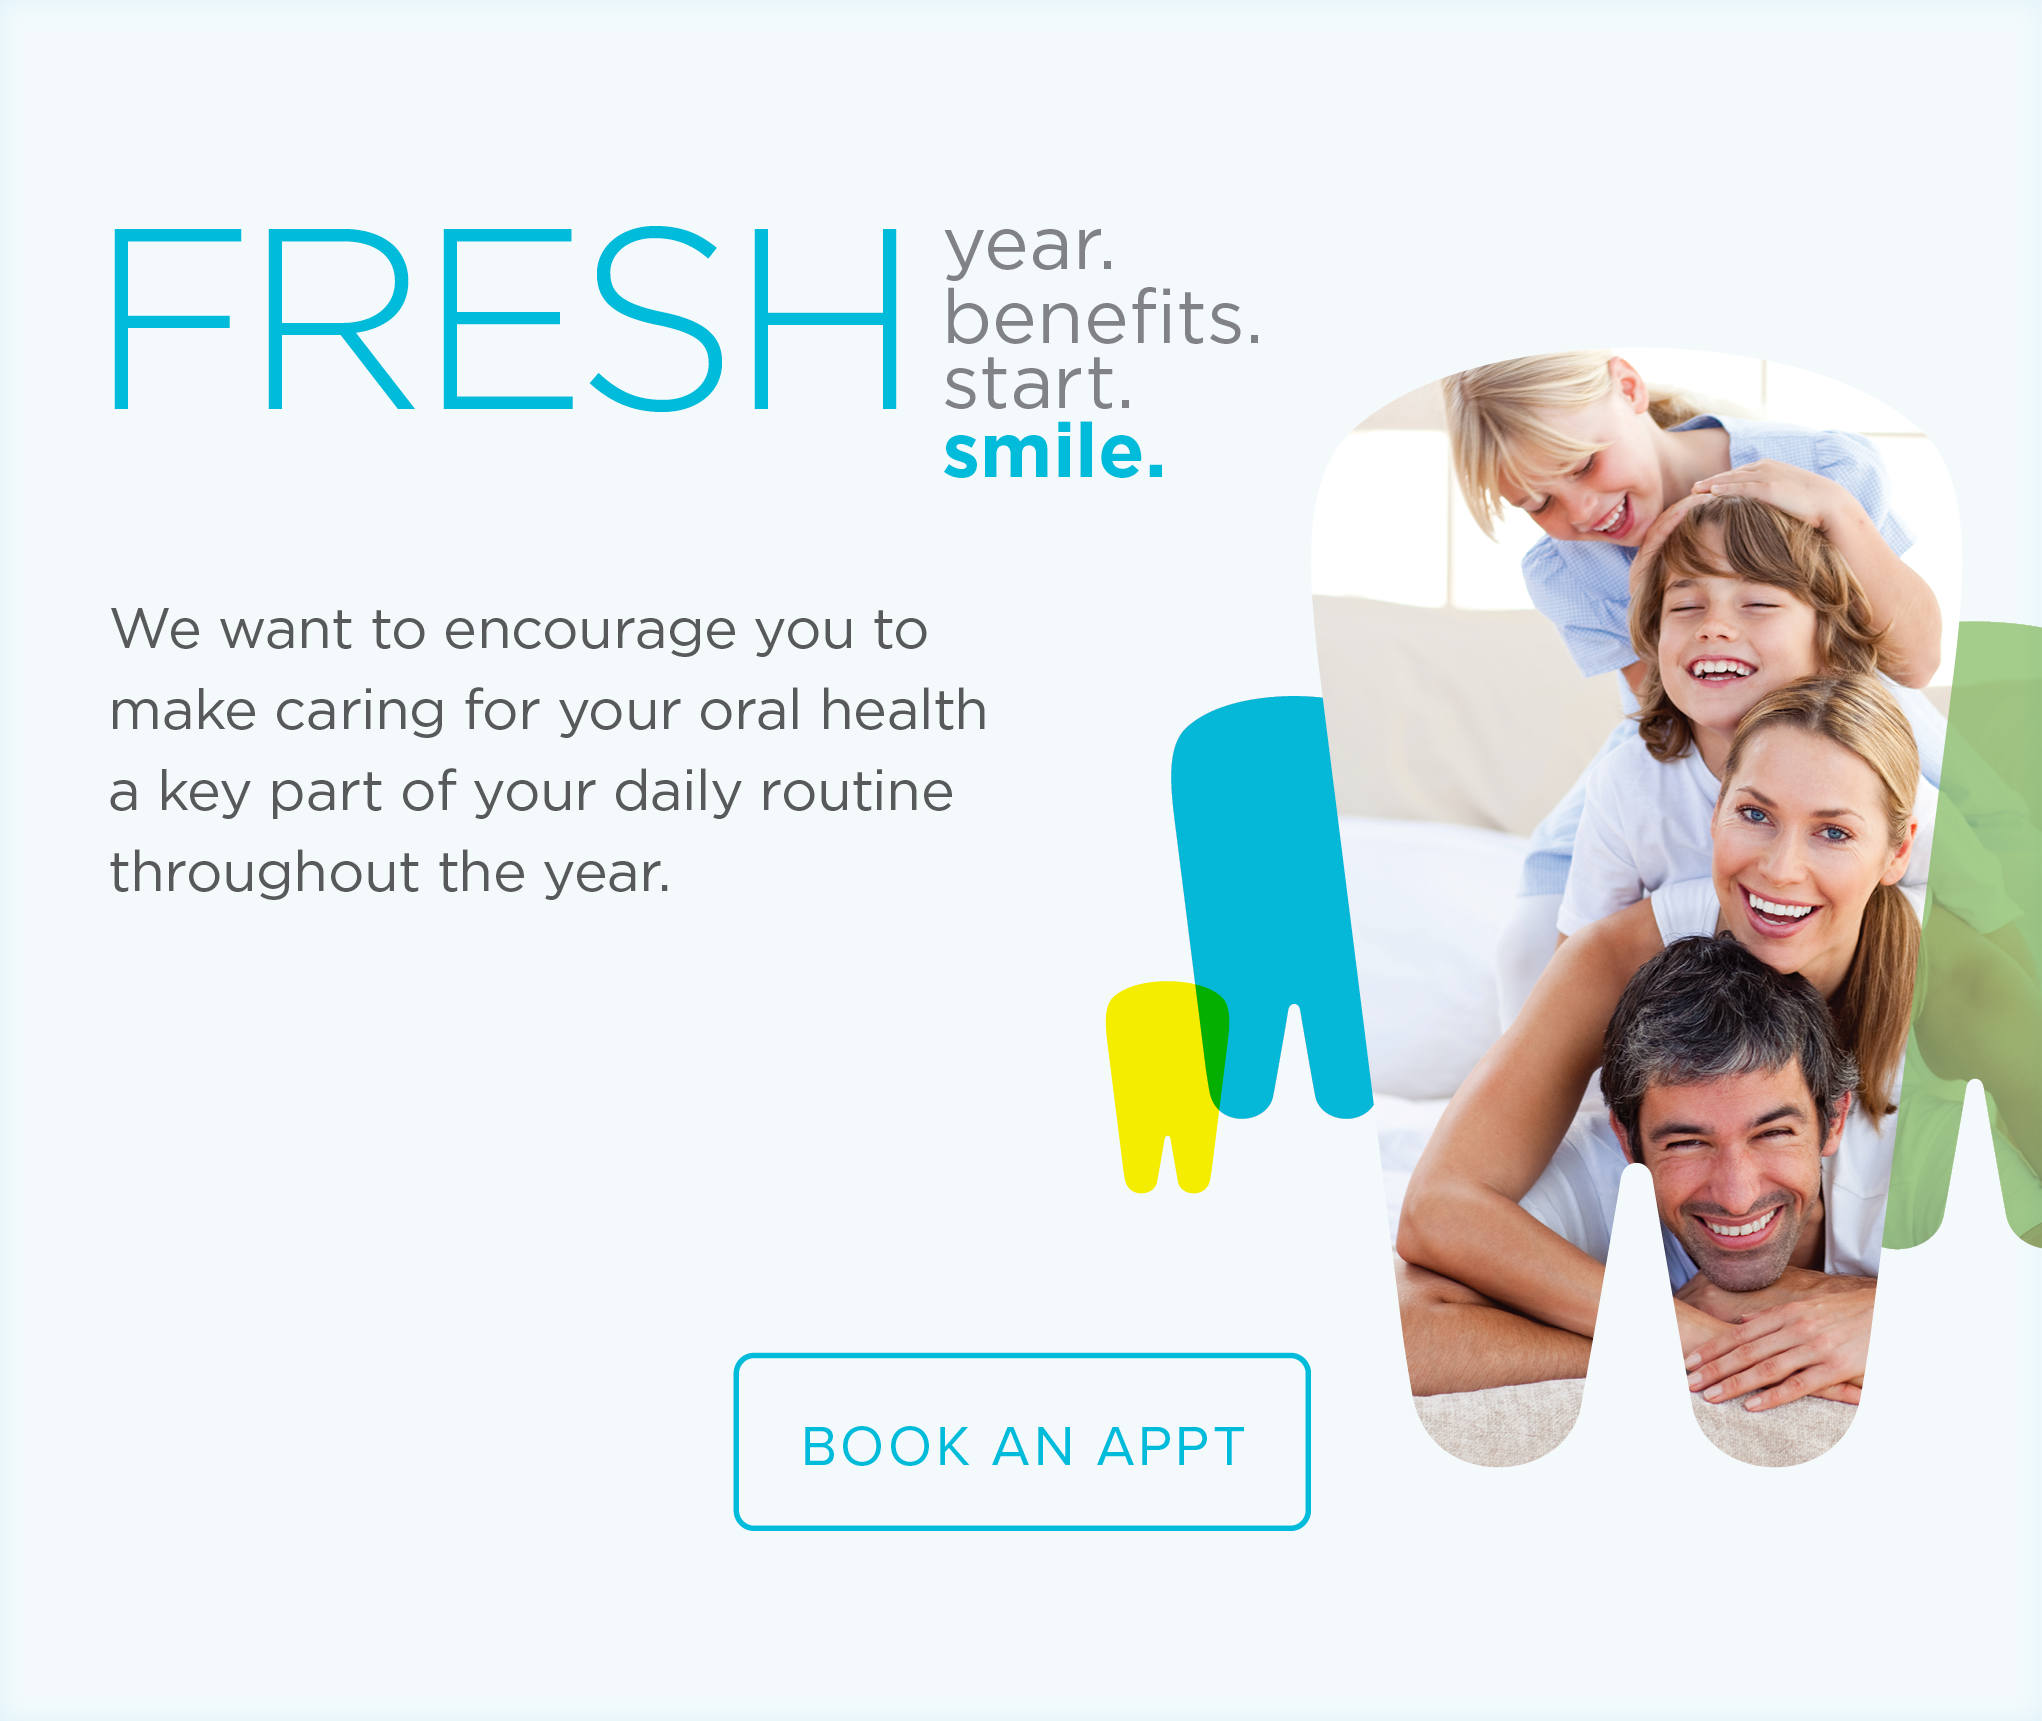 Pavilions Dental Group - Make the Most of Your Benefits